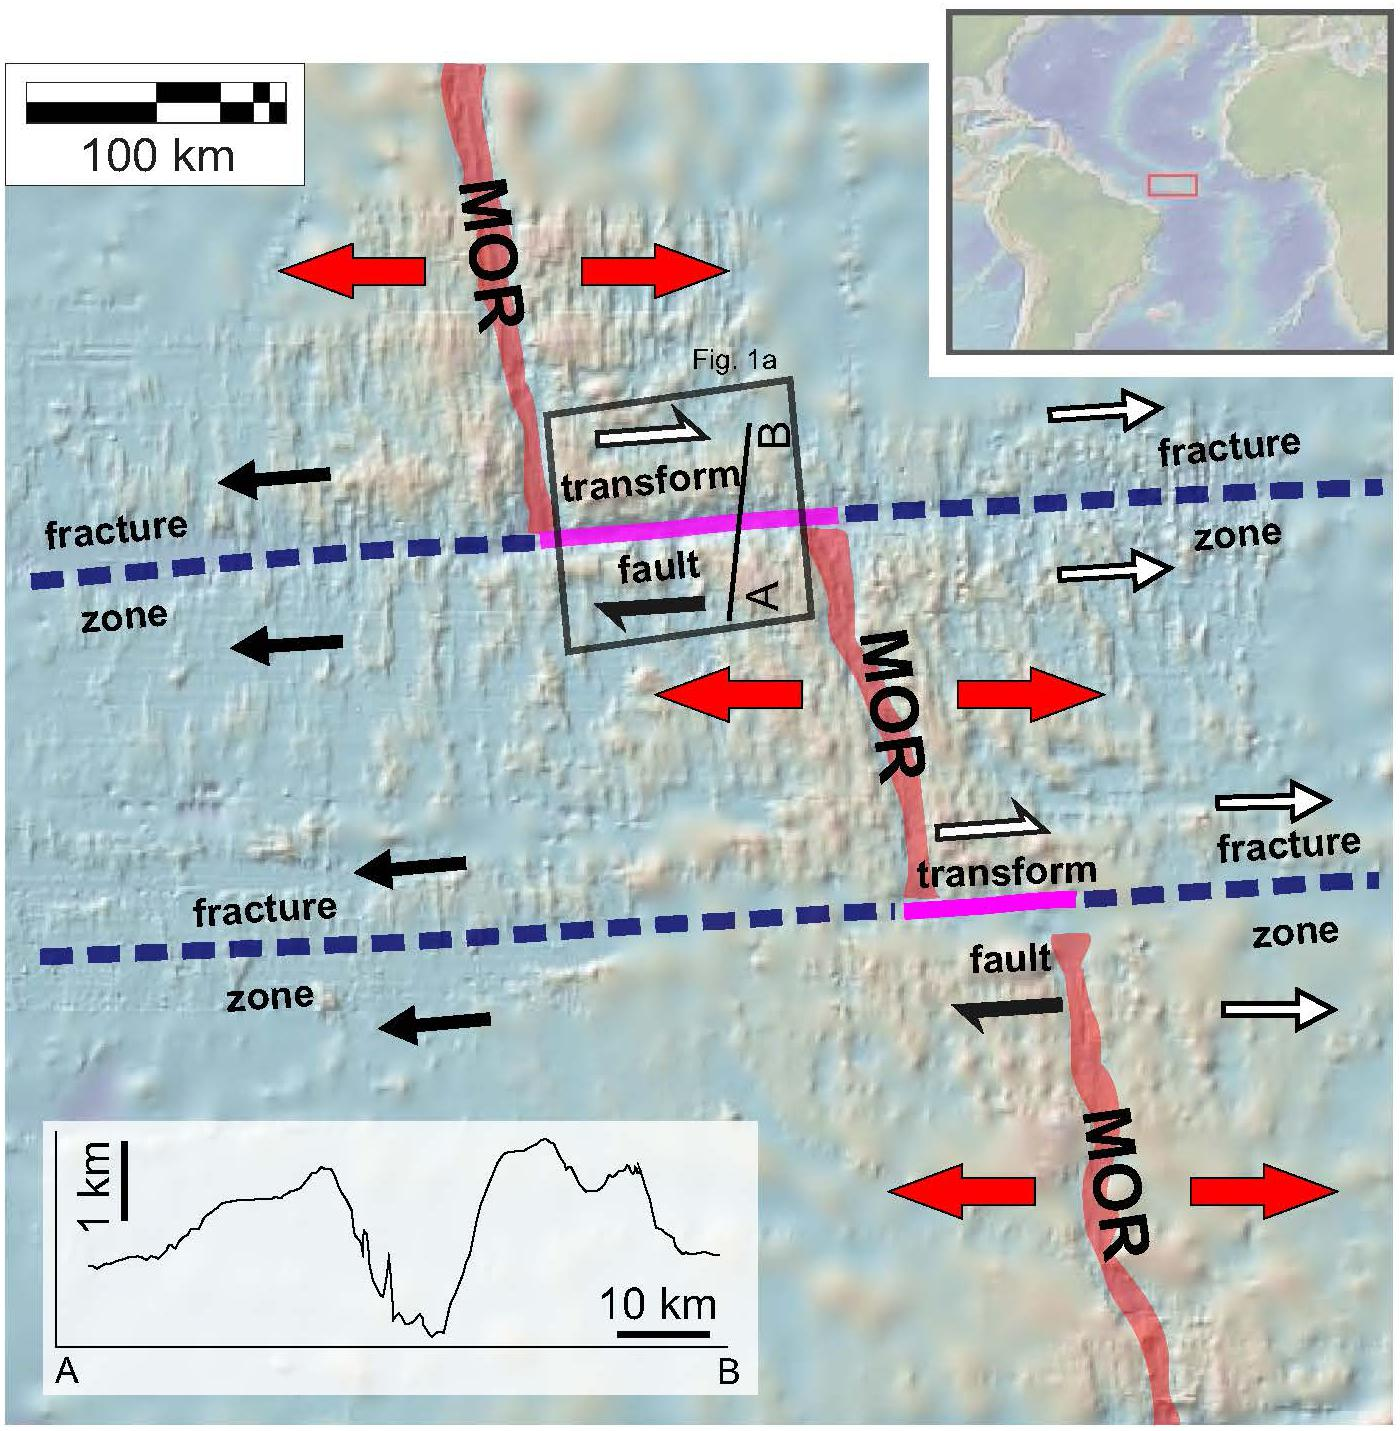 Frontiers | Marine Transform Faults and Fracture Zones: A